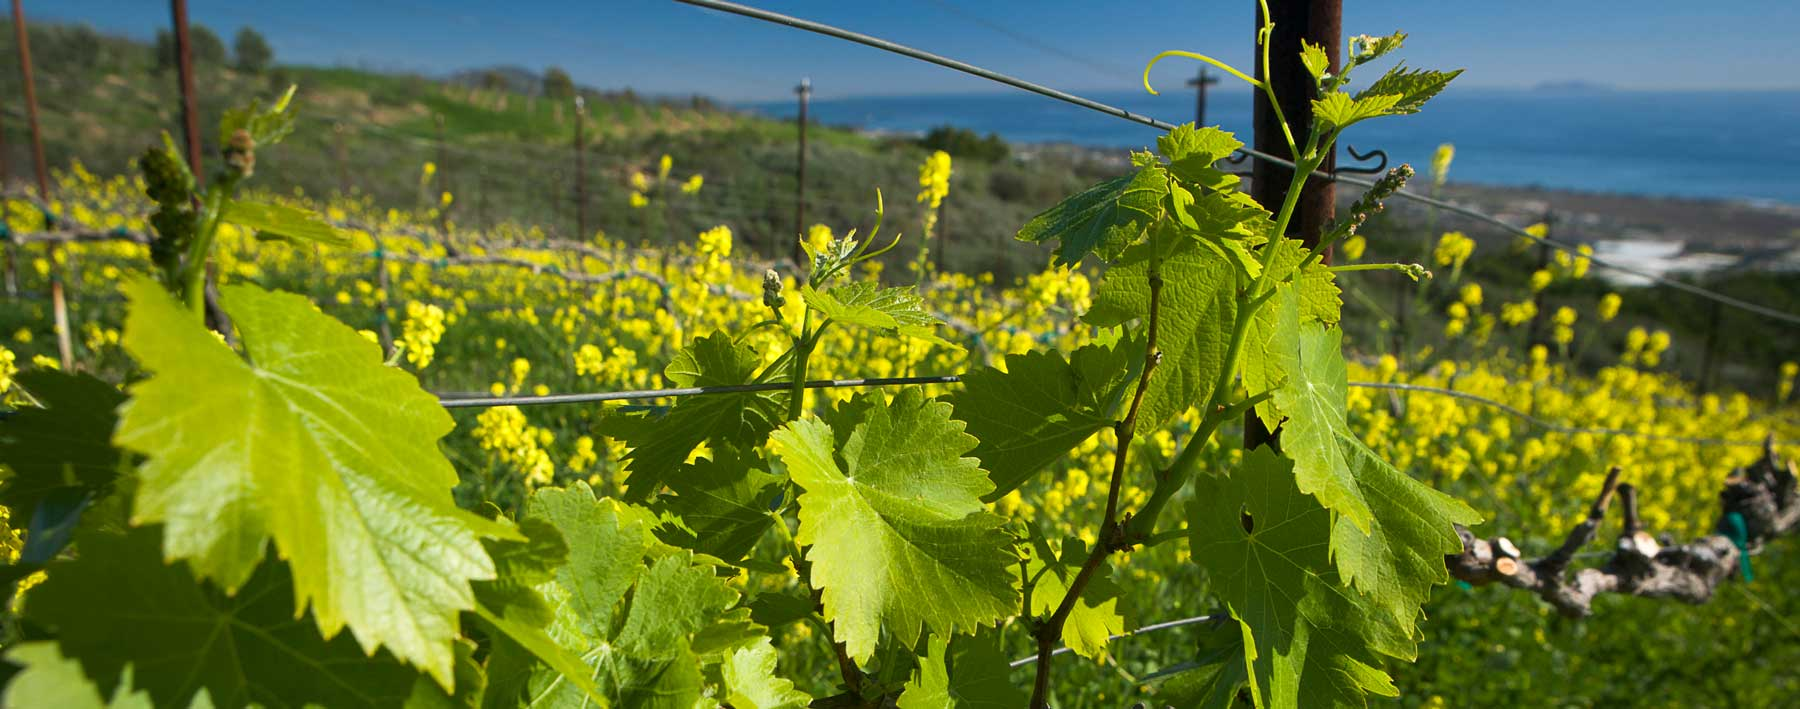 A closeup of wine grape leaves and flowers from a vineyard in Santa Ynez Valley